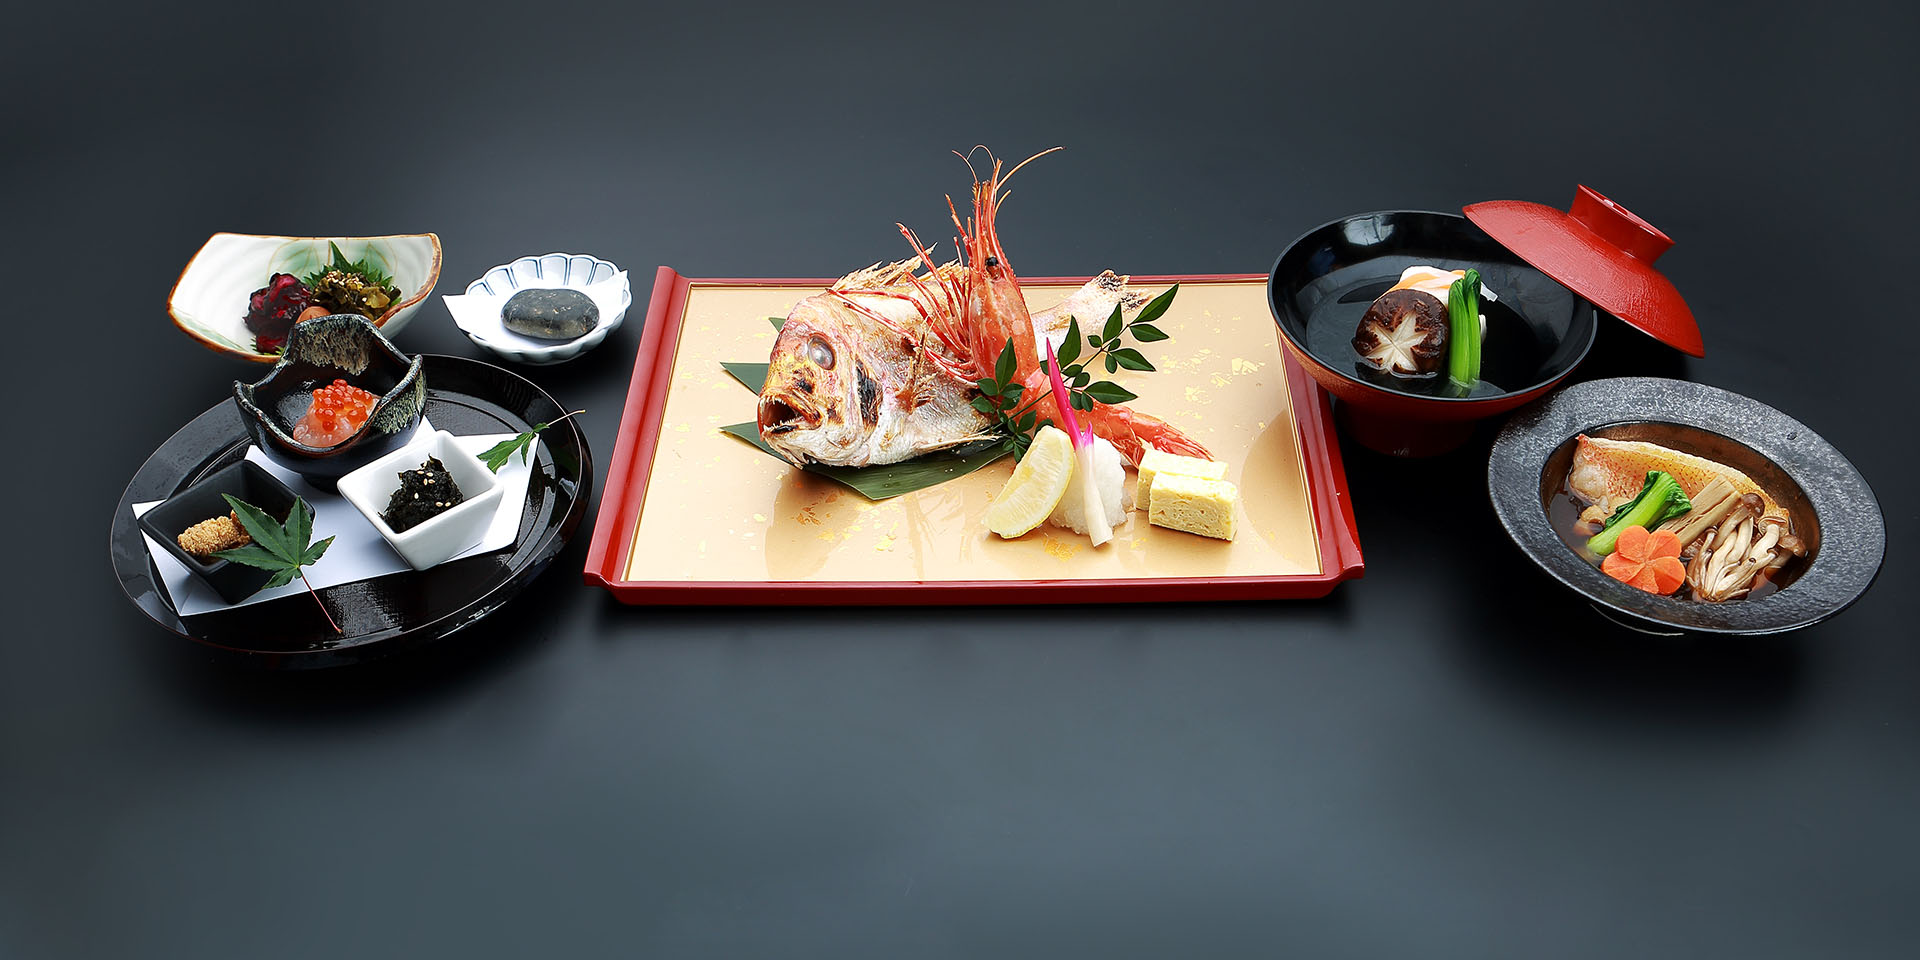 Connoisseurs Evolve as Kaiseki Booms